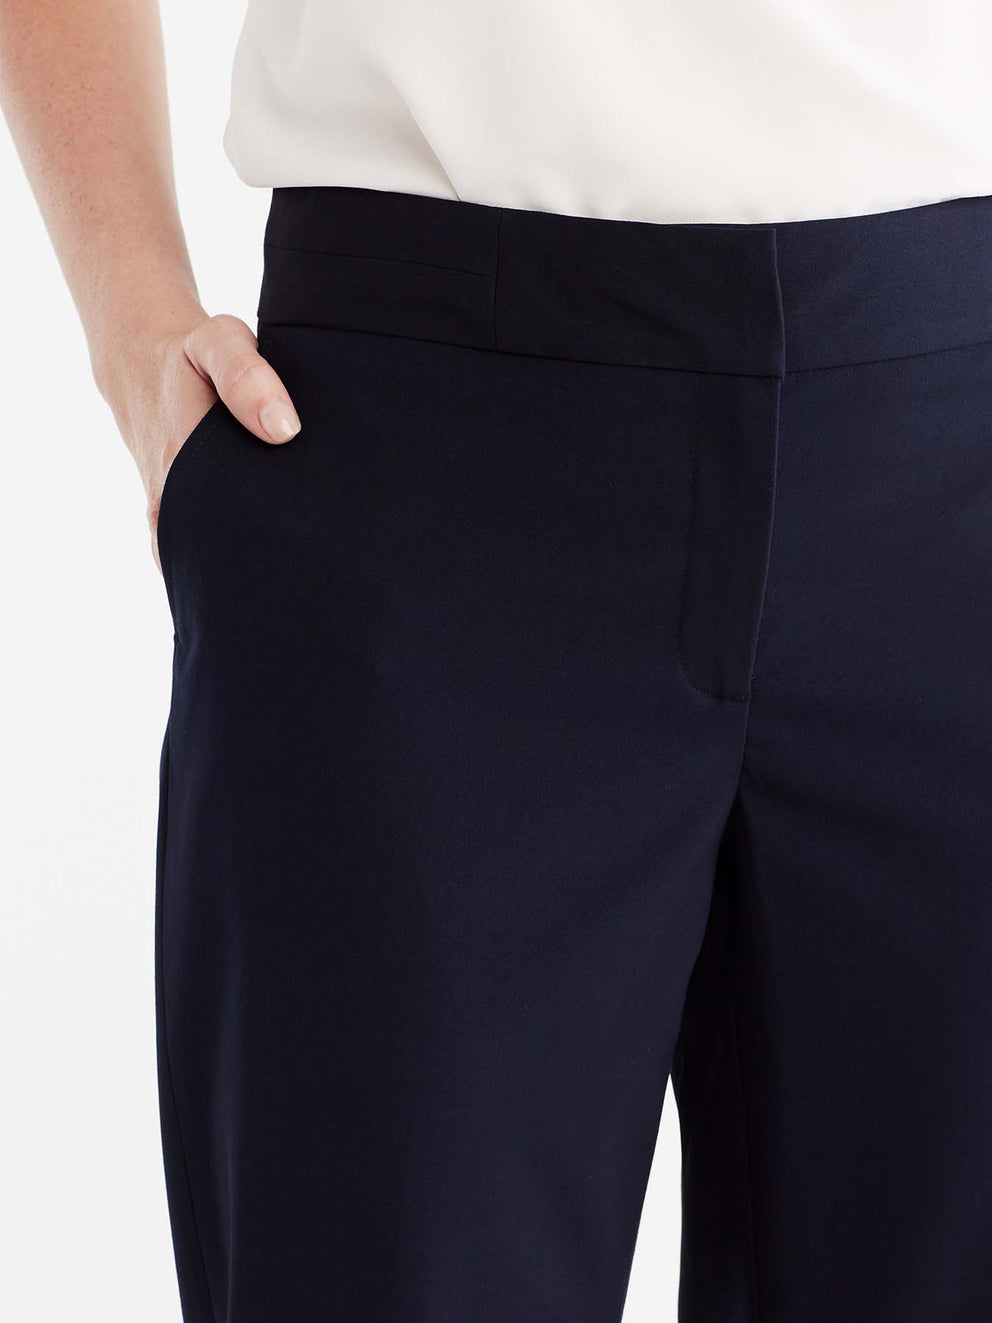 The Jones New York Washable Grace Ankle Pant in color Navy - Image Position 3